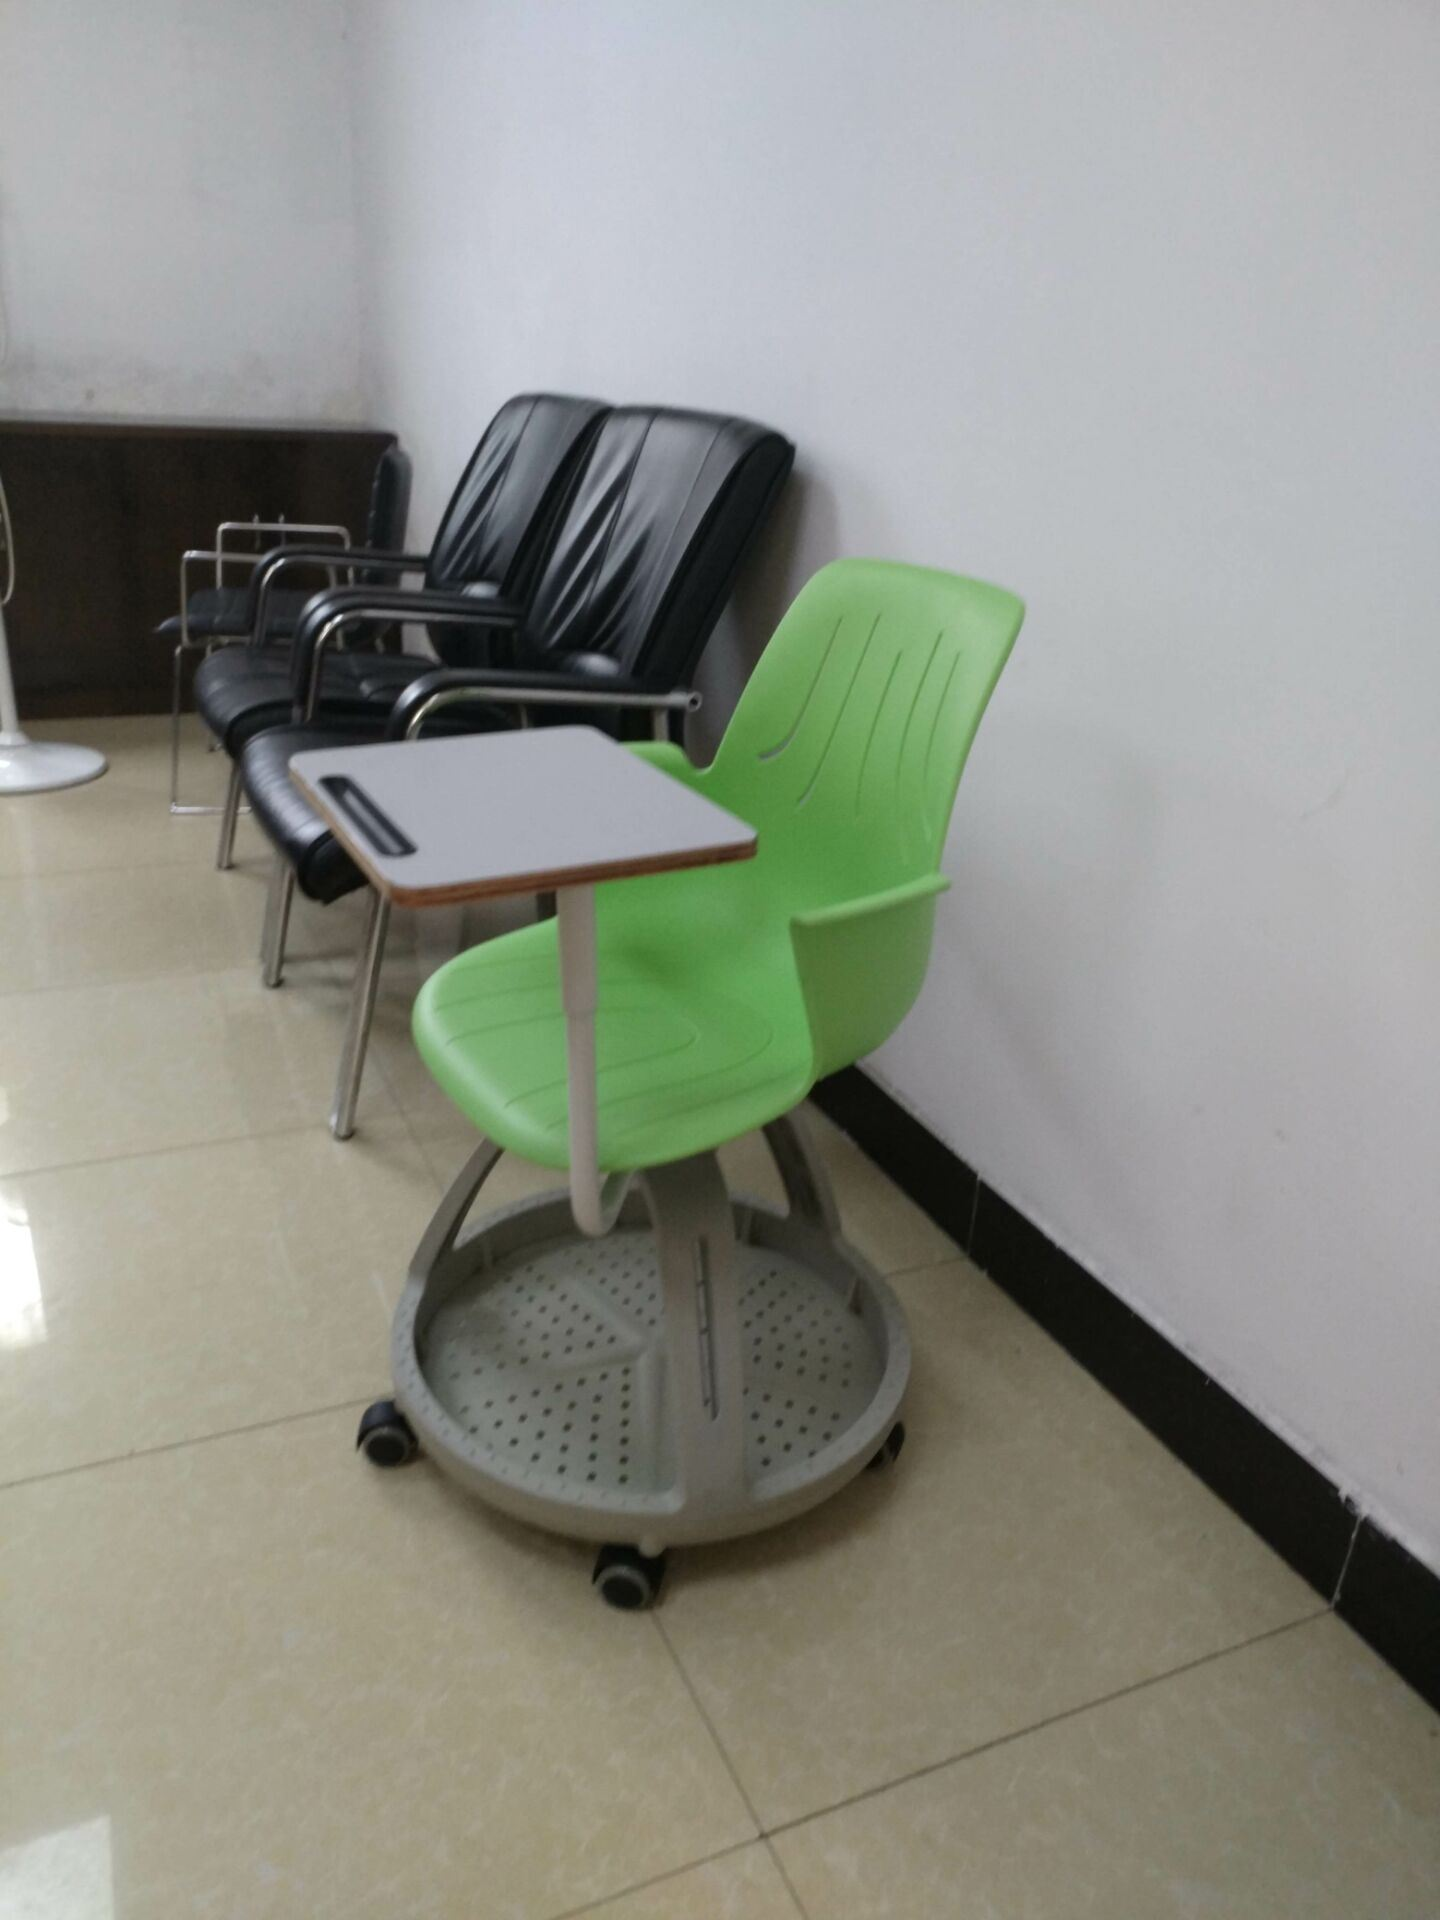 Standard Clssroom plastic Node Training Chair with Writing Pad